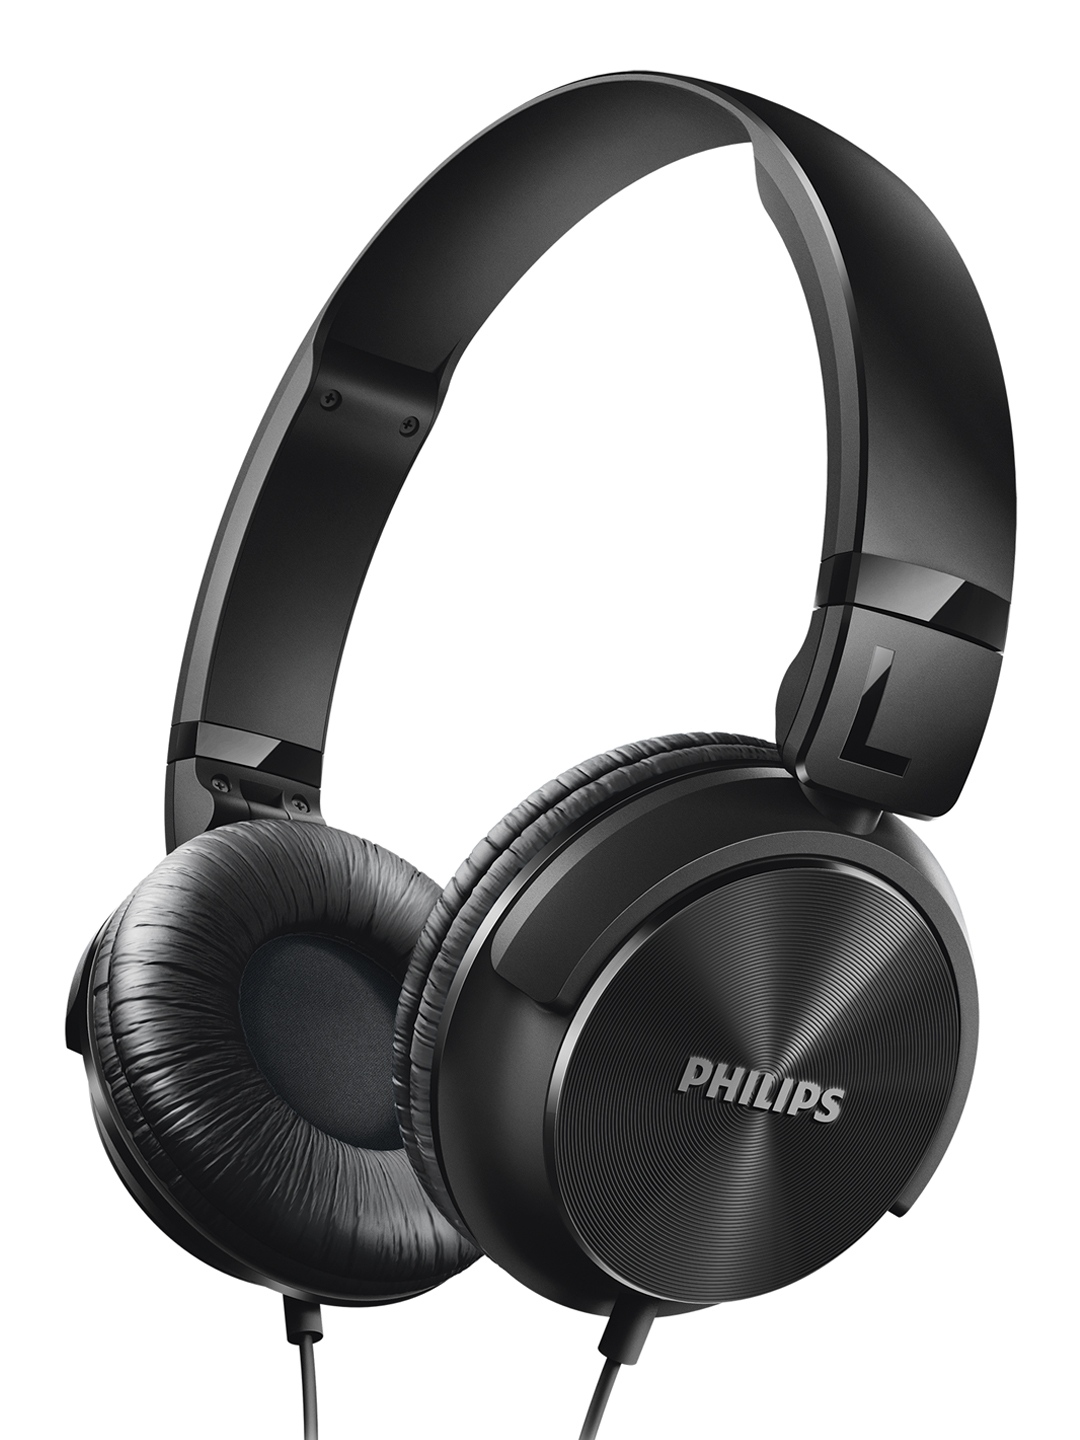 Philips Black Wireless Headphones with Bluetooth   Mic Philips Headphones